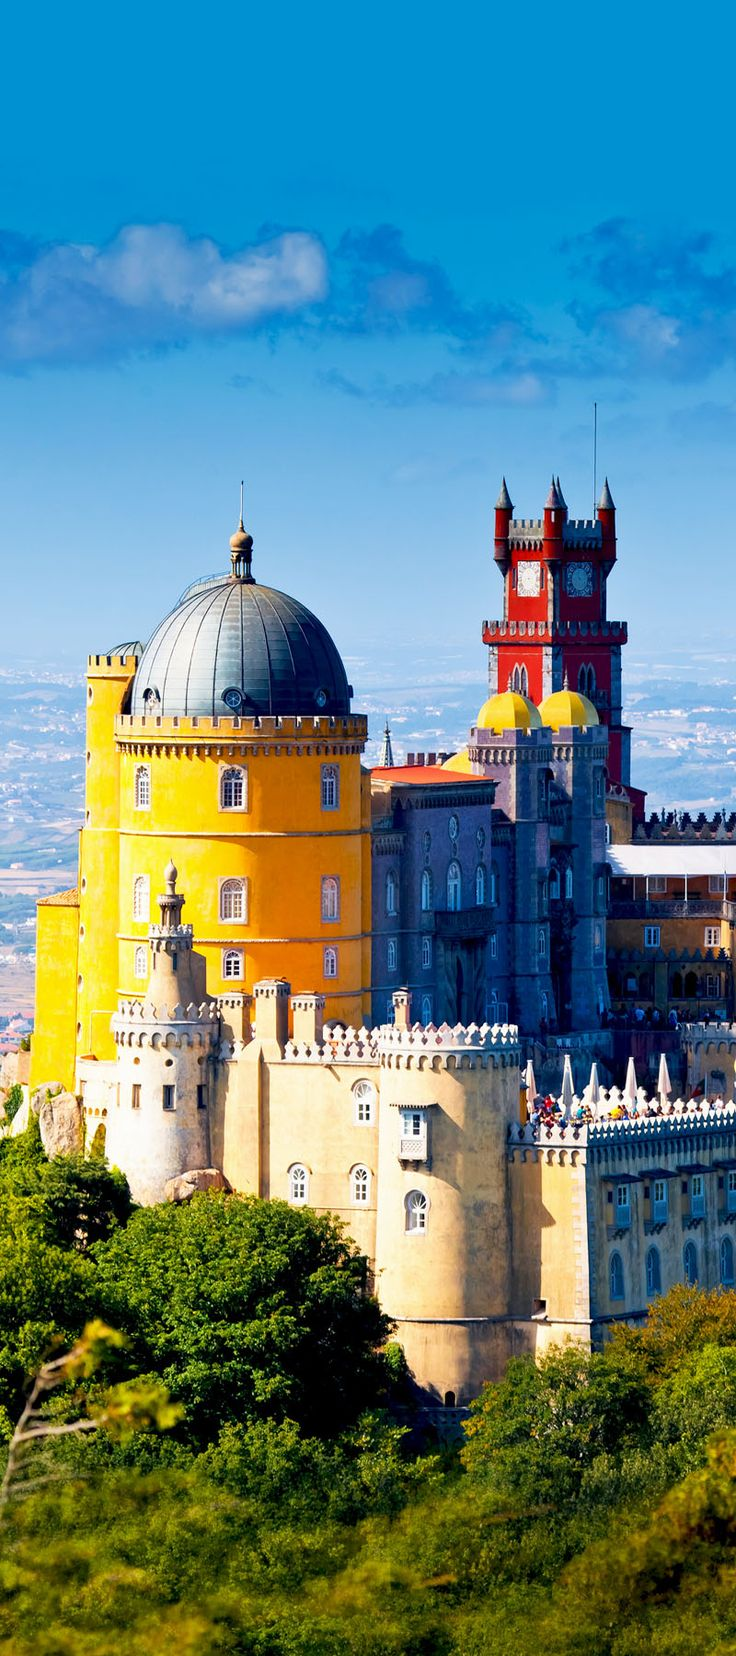 Pena National Palace in Sintra, Portugal (Palacio Nacional da Pena)    |   Amazing Photography Of Cities and Famous Landmarks From Around The World